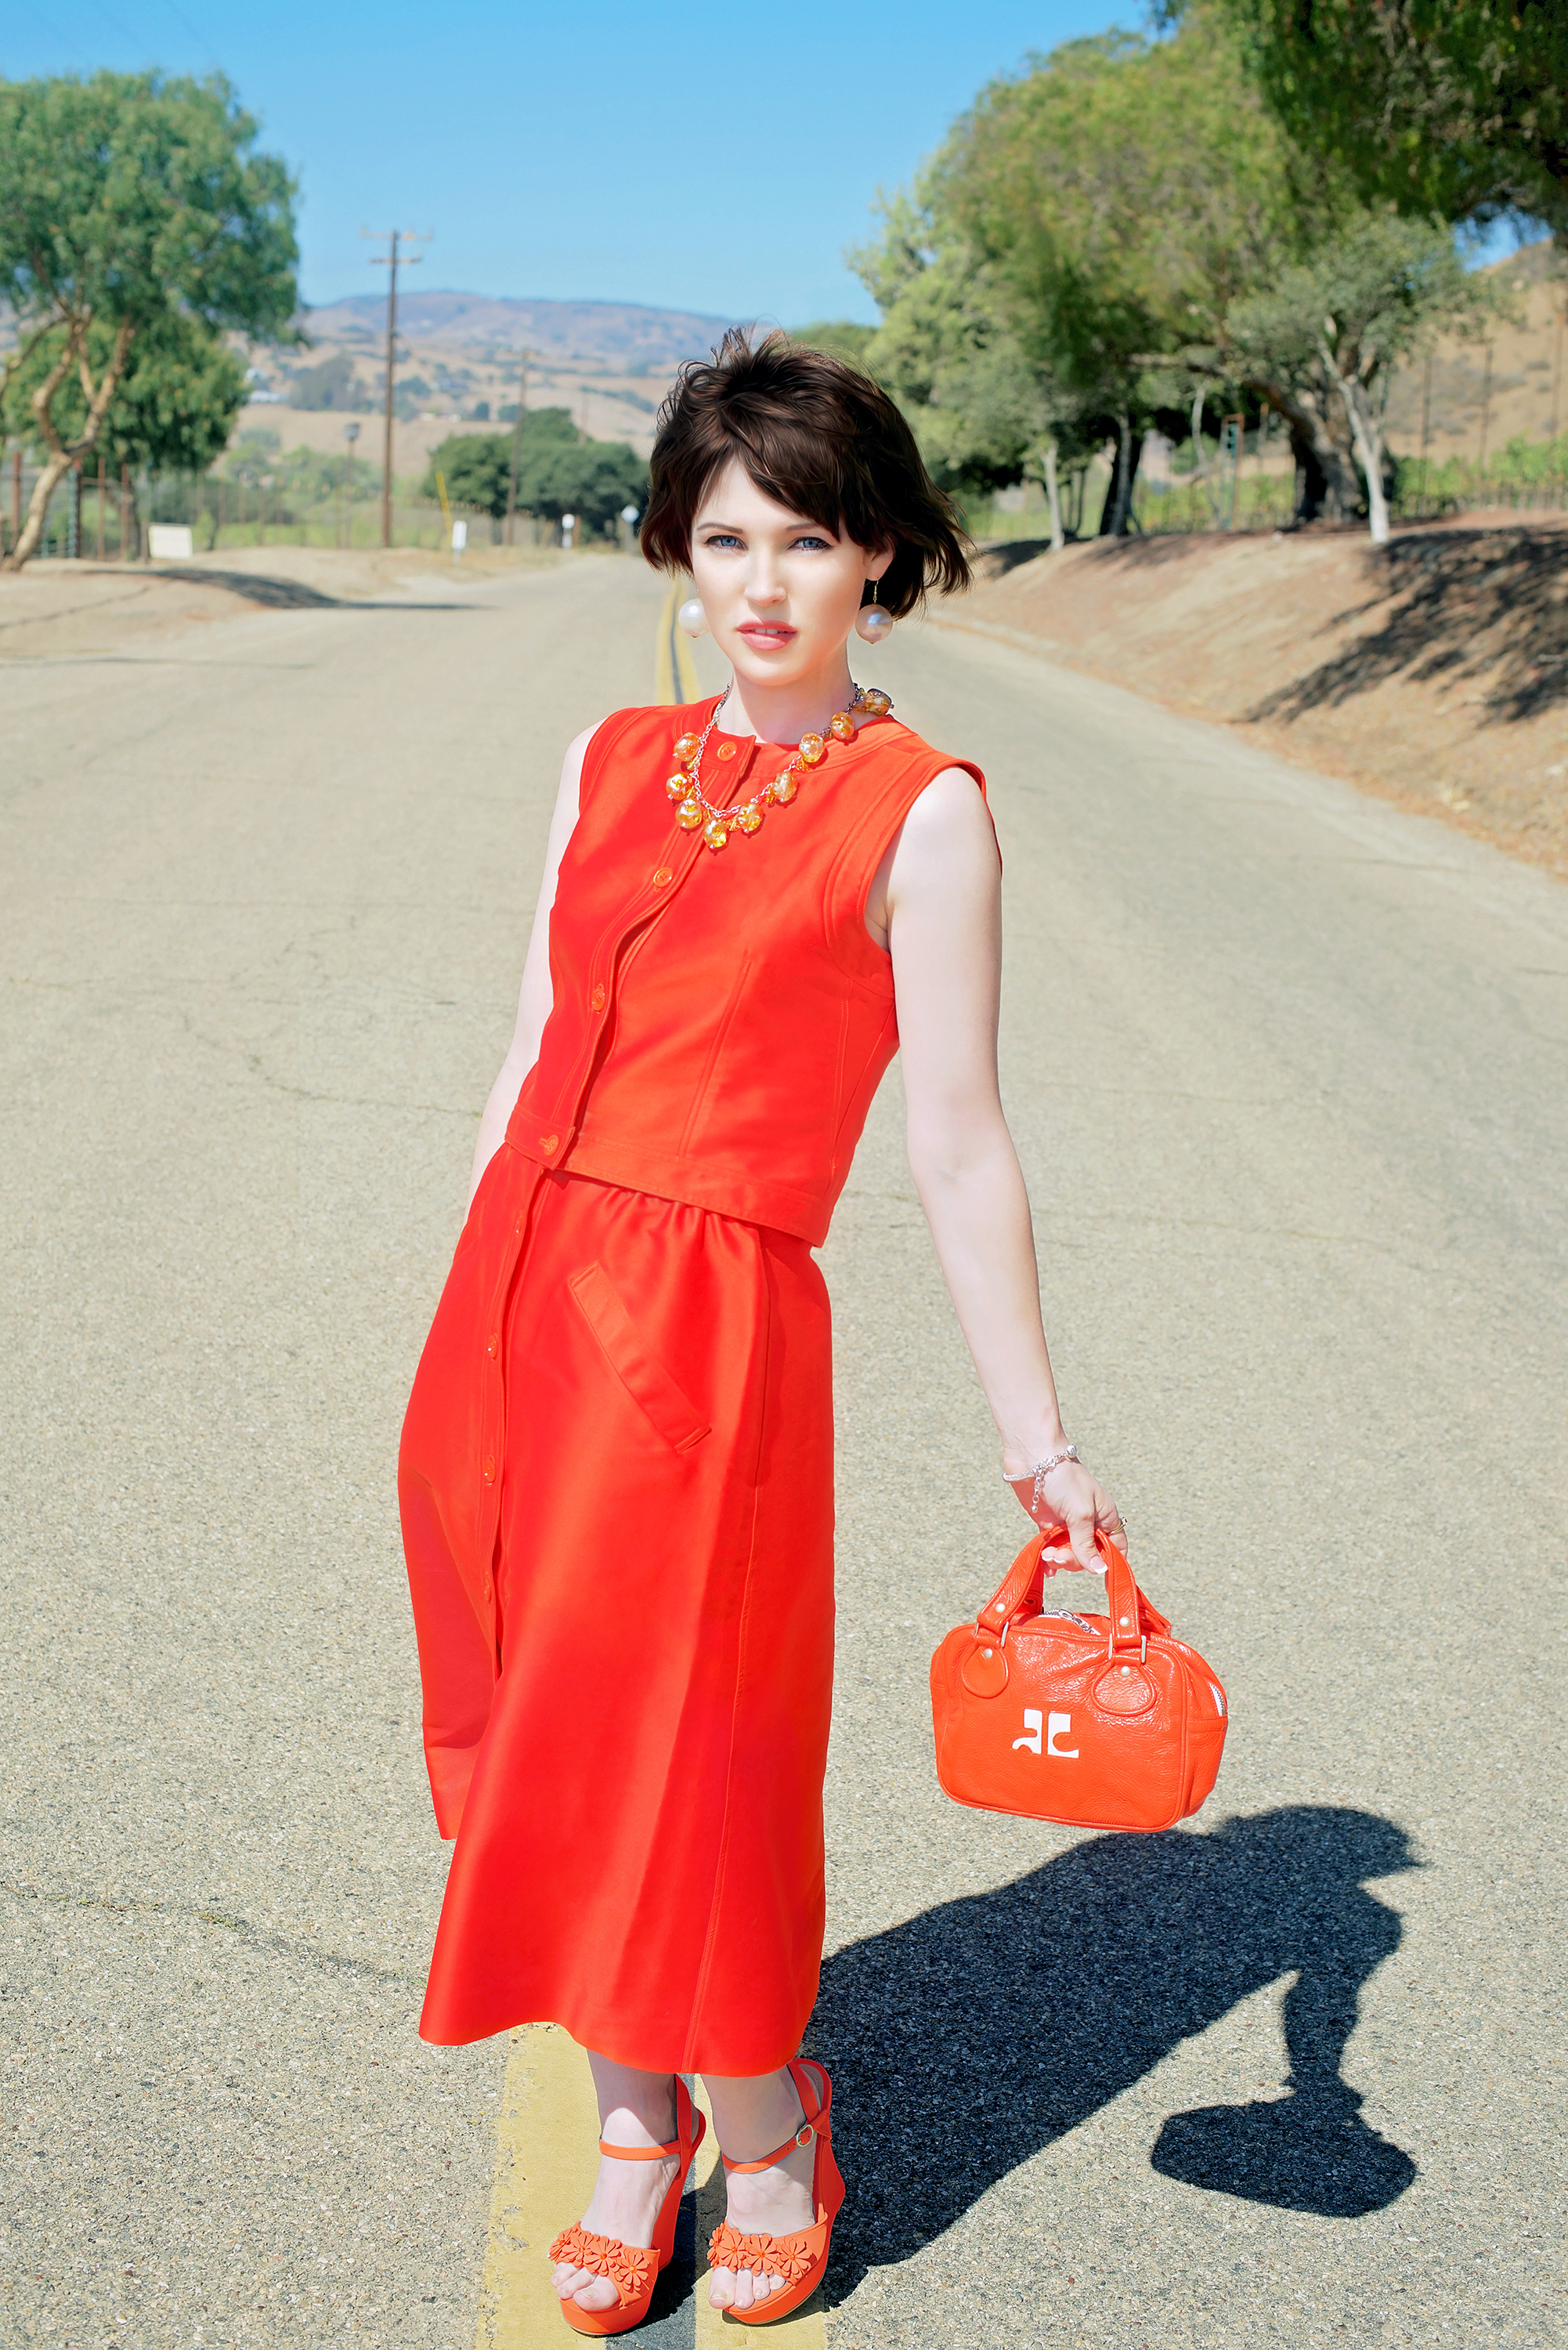 Orange_Dress_road_sm